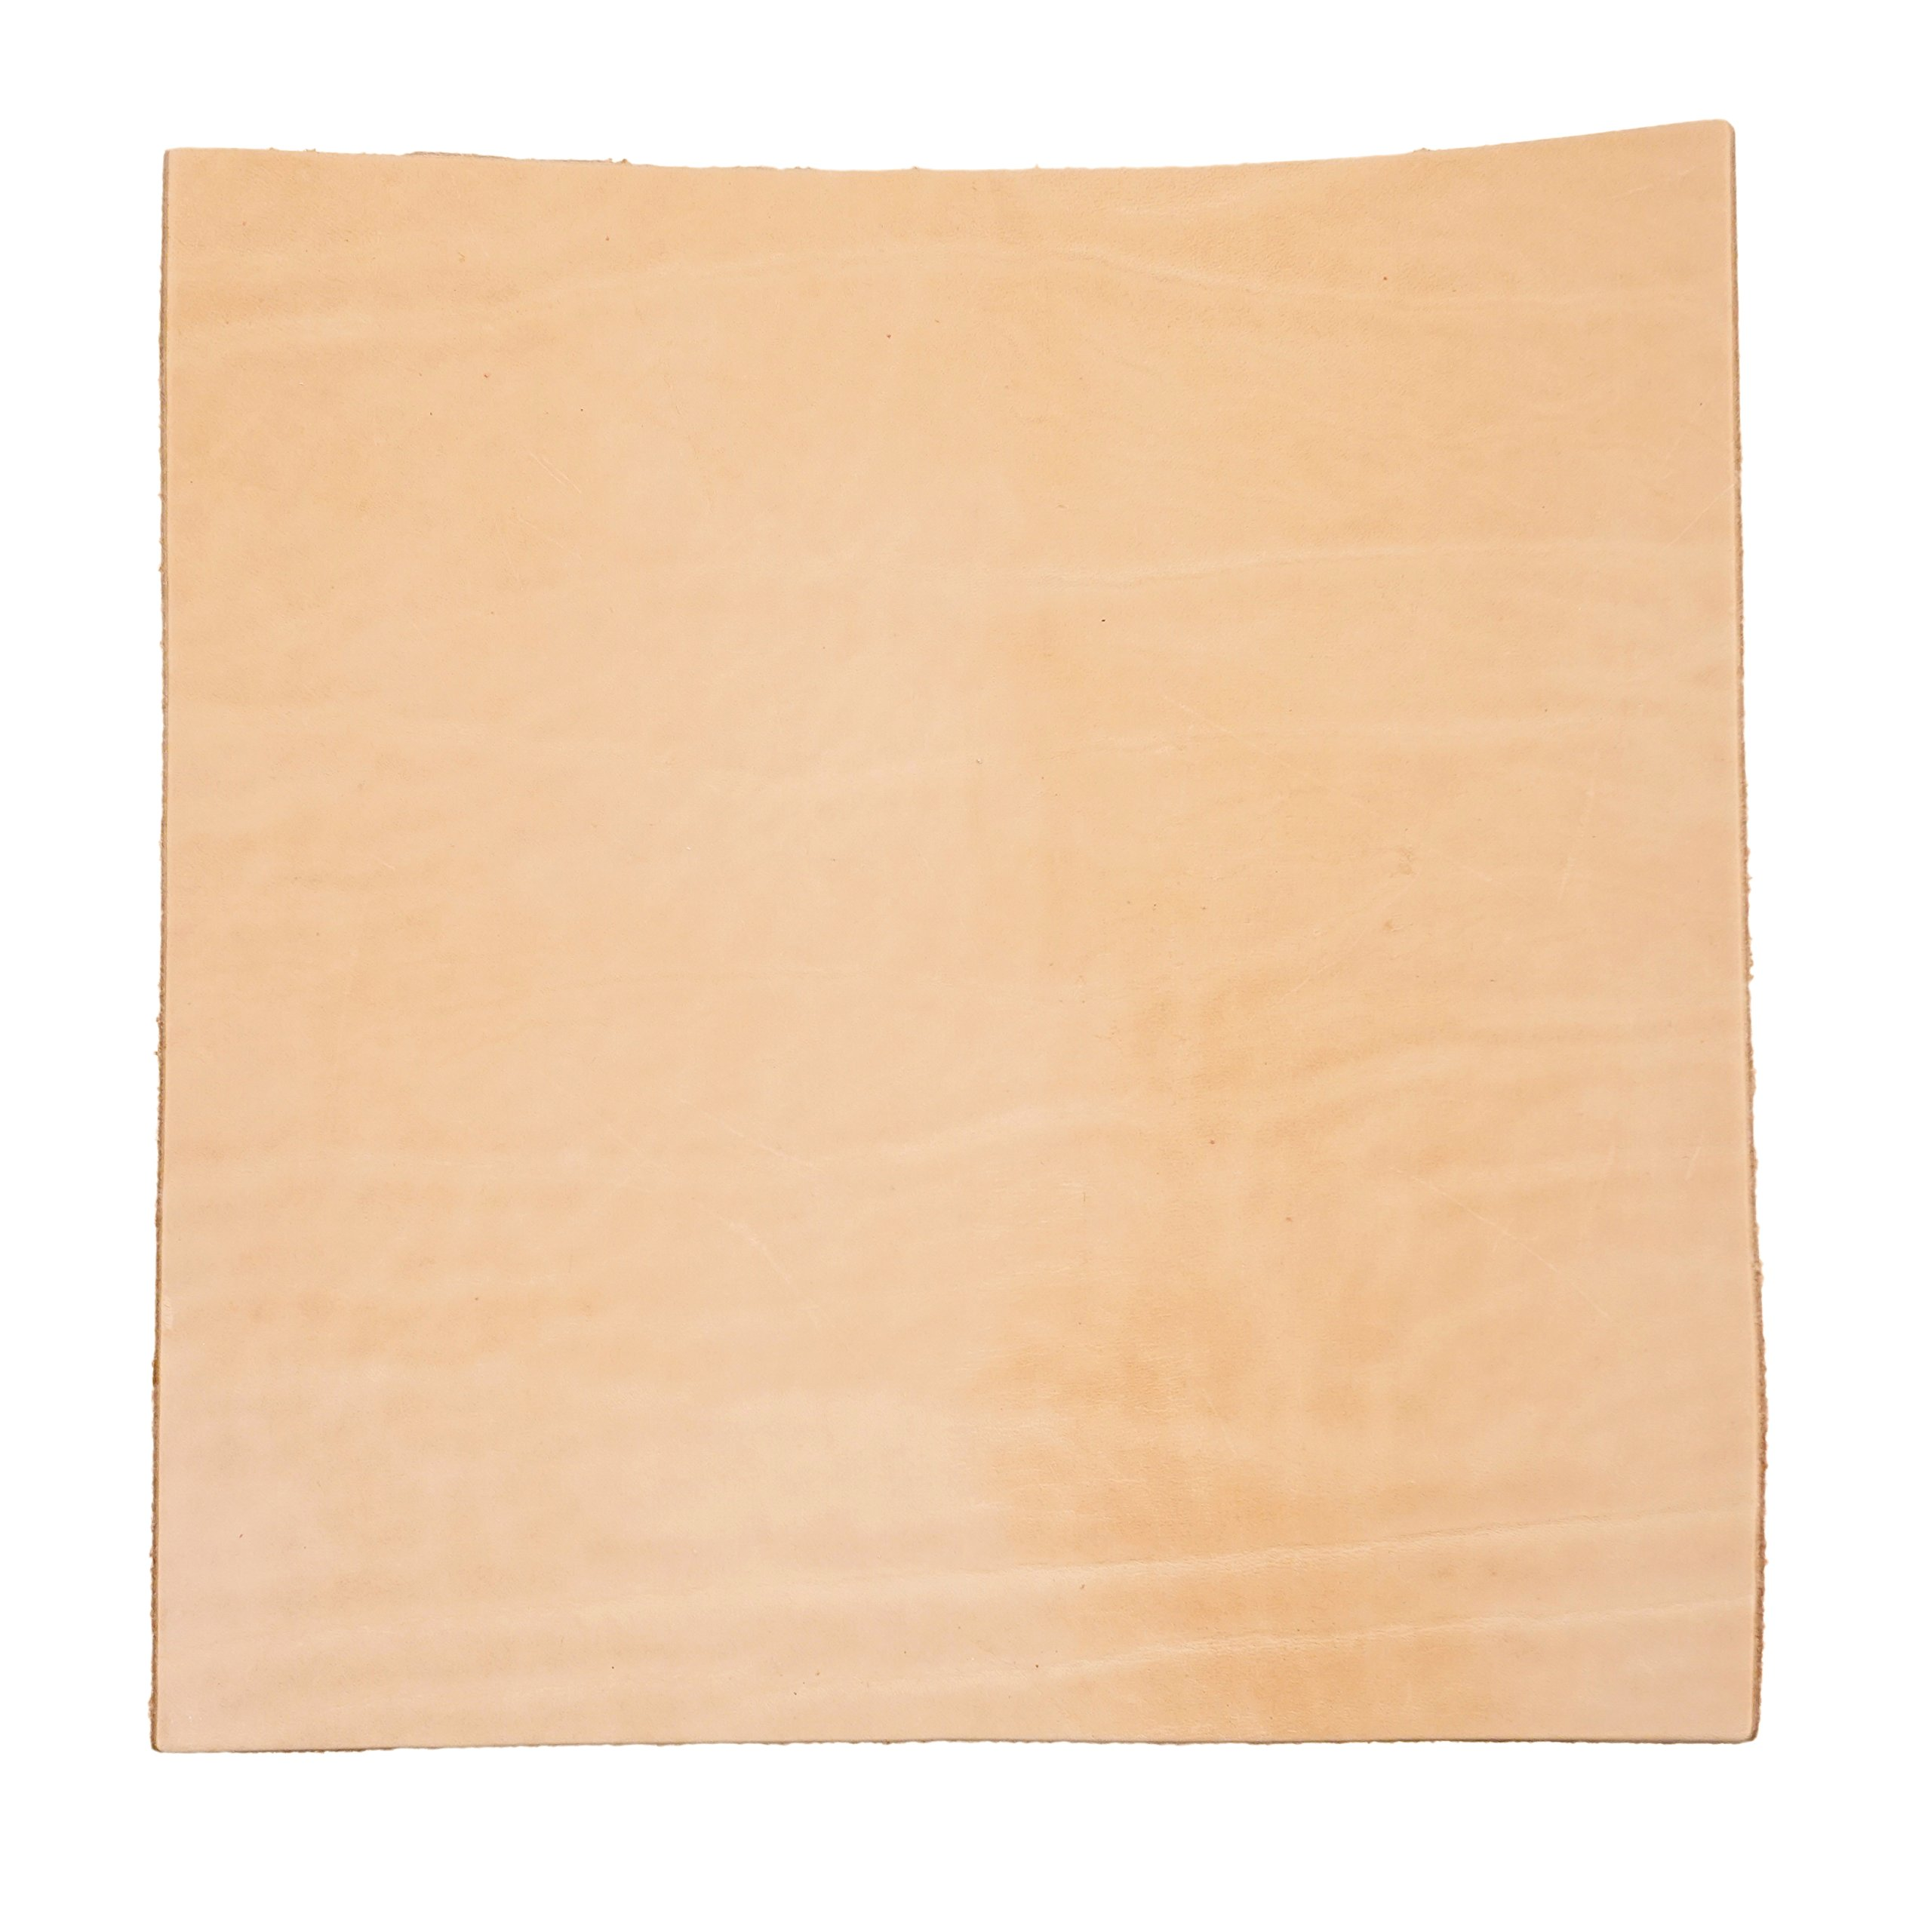 Import Tooling Leather 5-6oz Pre-Cut (12''x12) by SLC